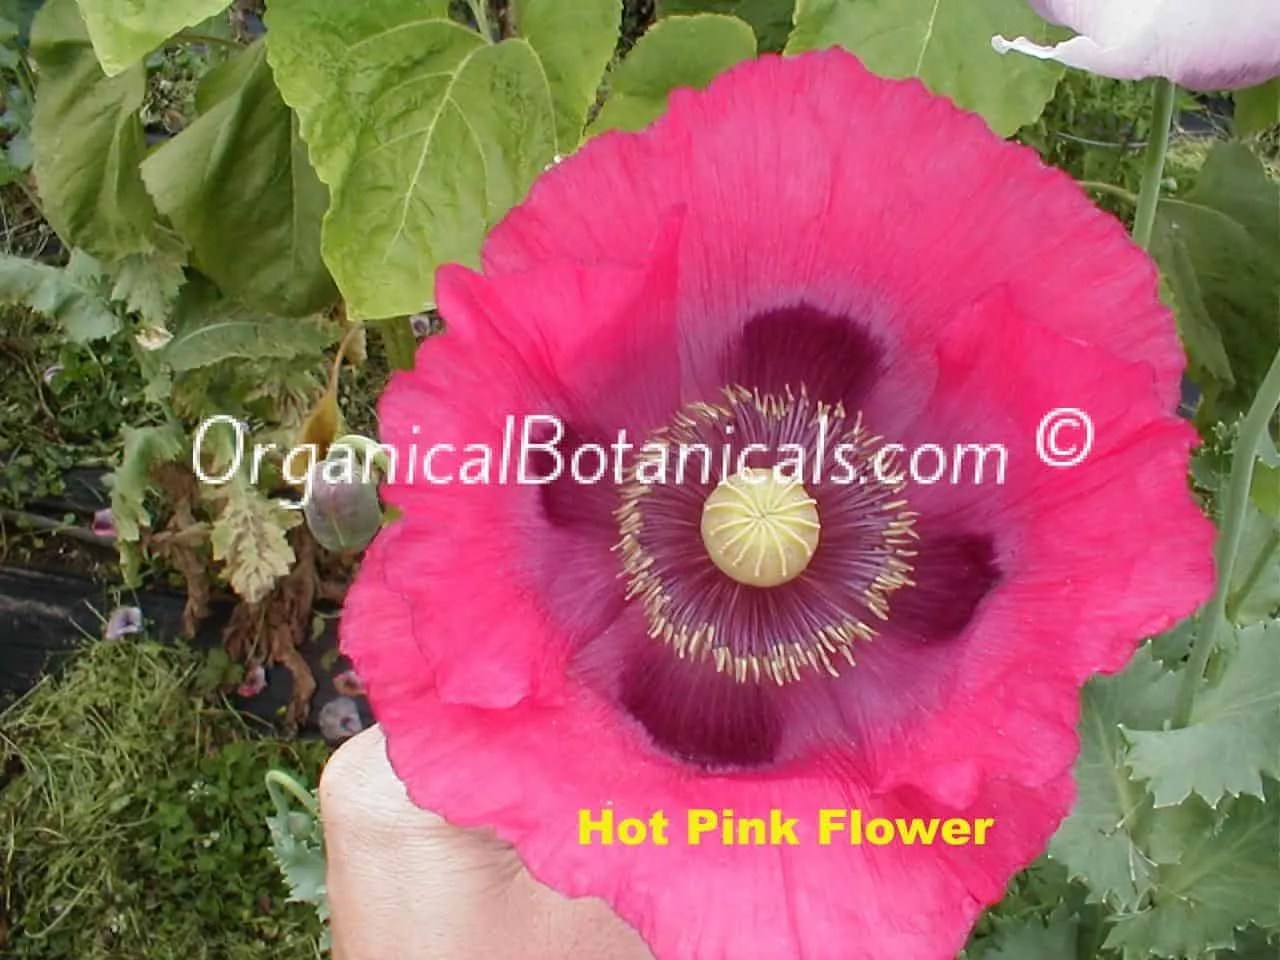 'Neon Hot Pink' Papaver Somniferum Poppy Flower